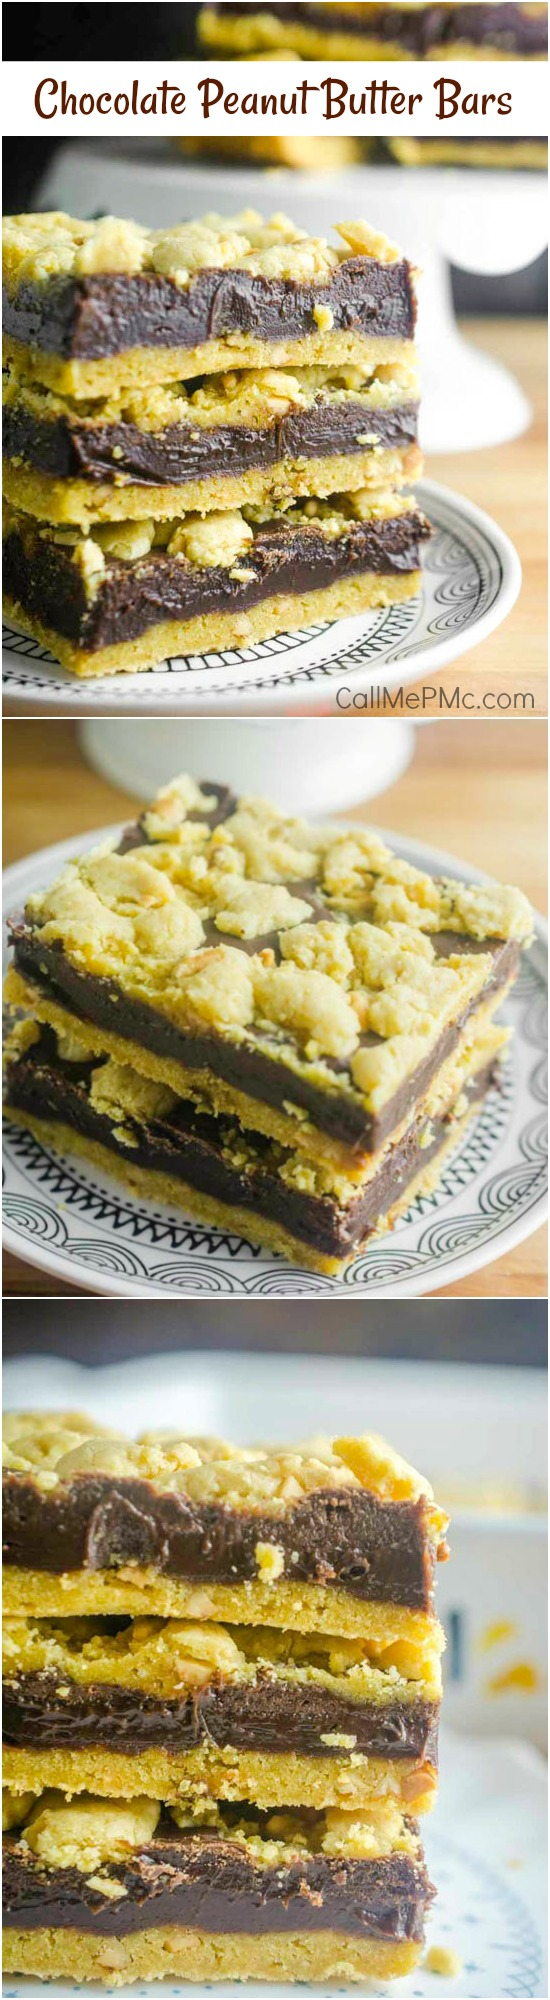 Made with a cake mix short-cut, Chocolate Peanut Butter Bars is an easy crumb bar dessert recipe with a creamy #peanutbutter and #chocolate mixture sandwiched between a #cakemix base and topping. #dessert #recipe #baked #easy #potluck